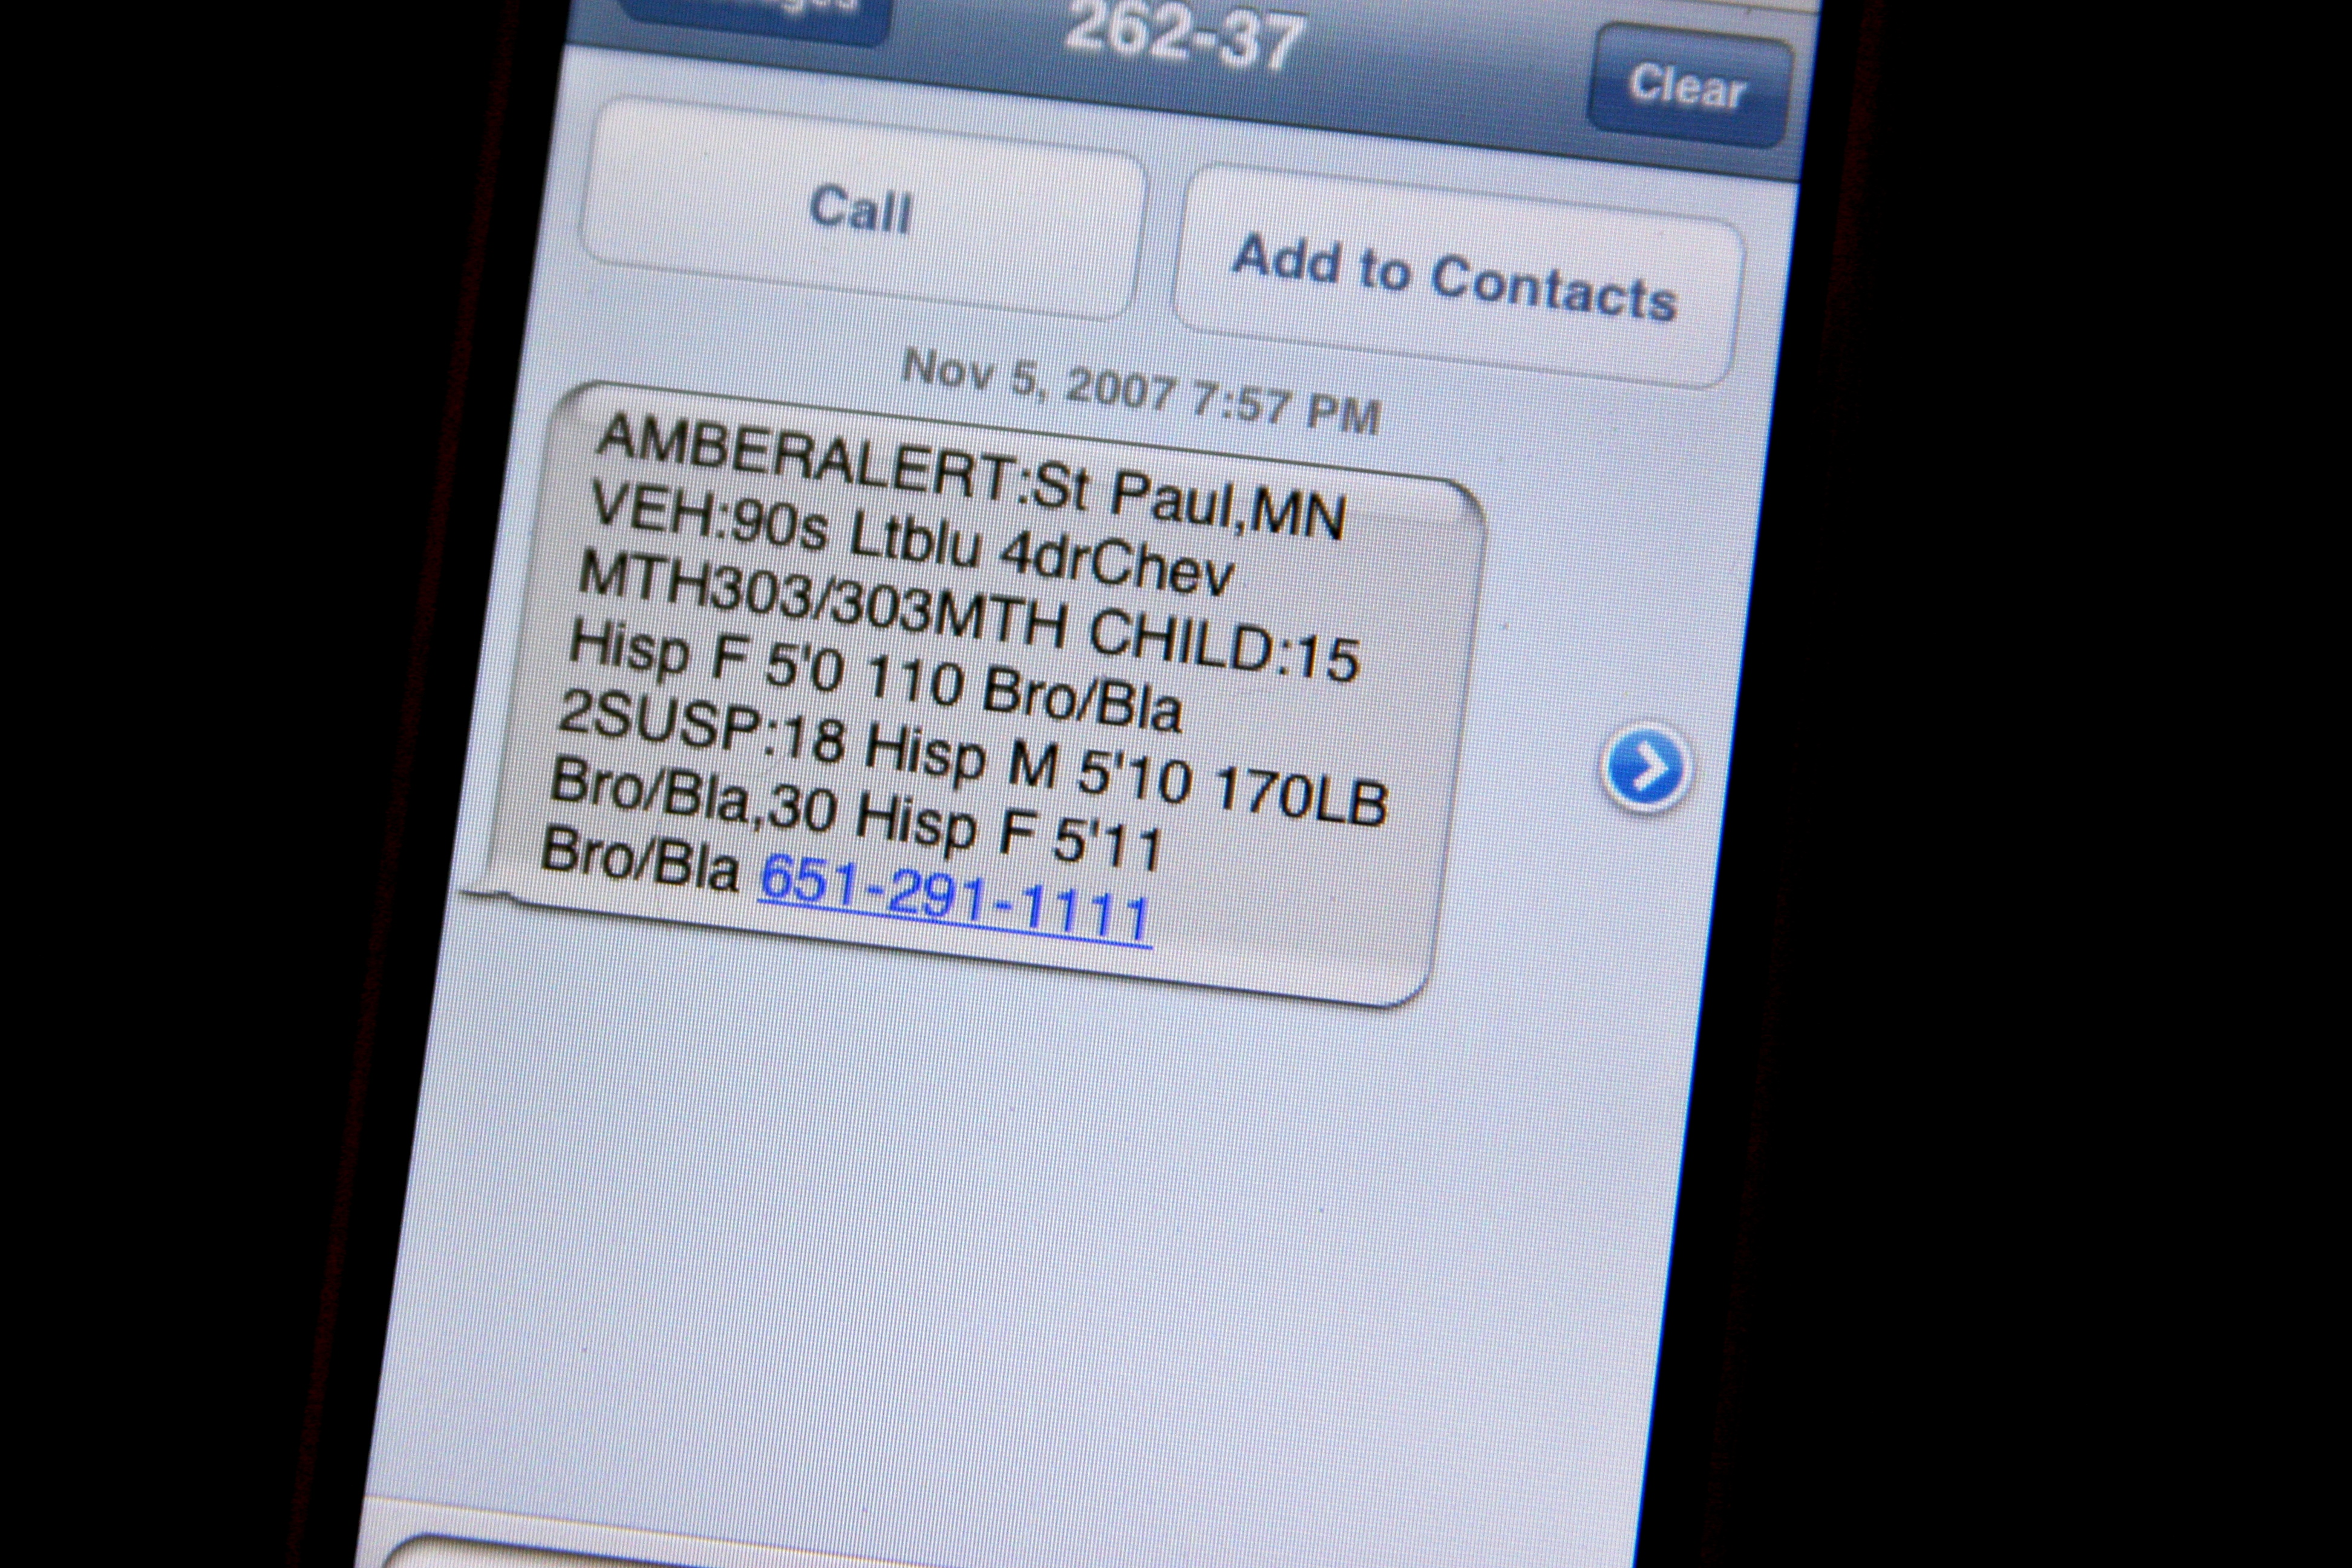 iphone text message amber alert 1882467856 o.jpg